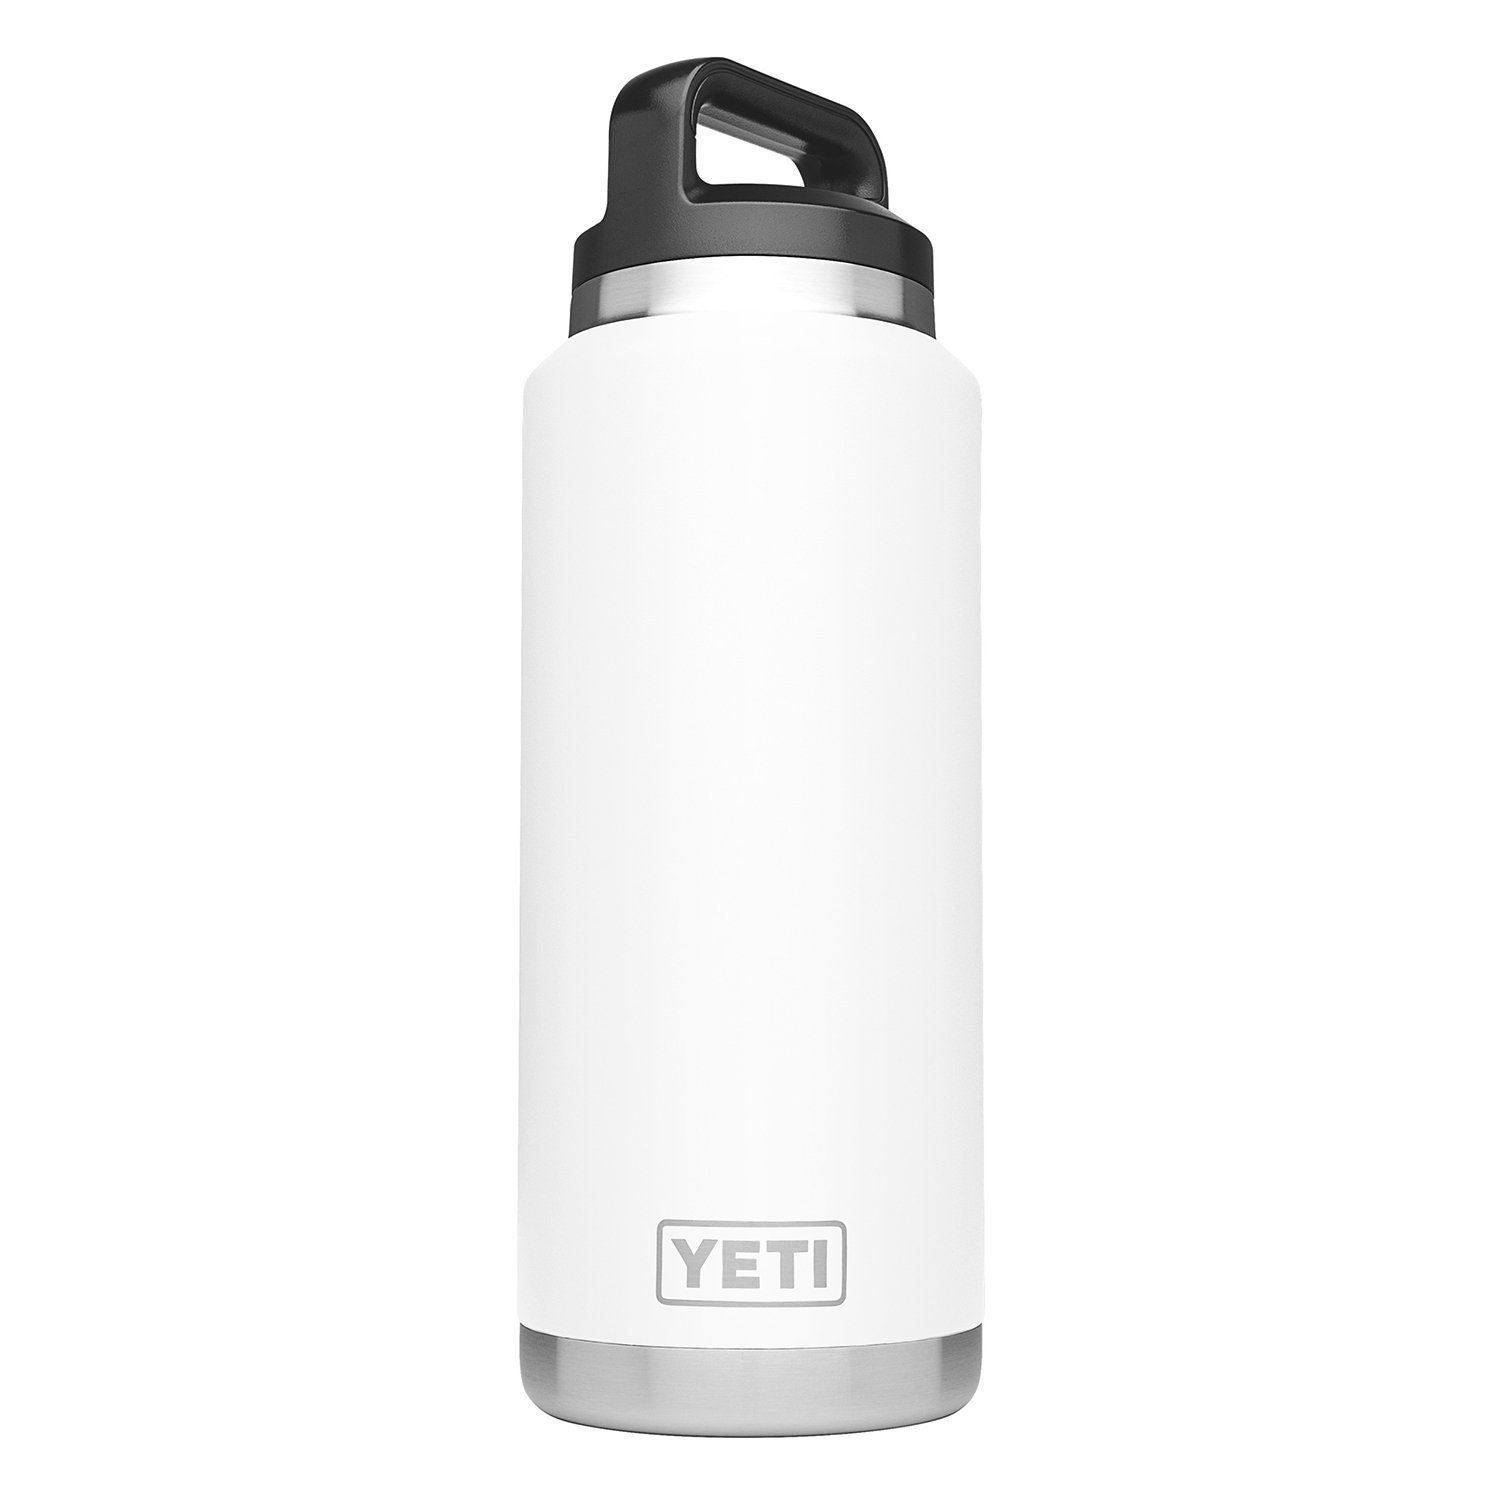 YETI Rambler 36oz Bottle, White by YETI